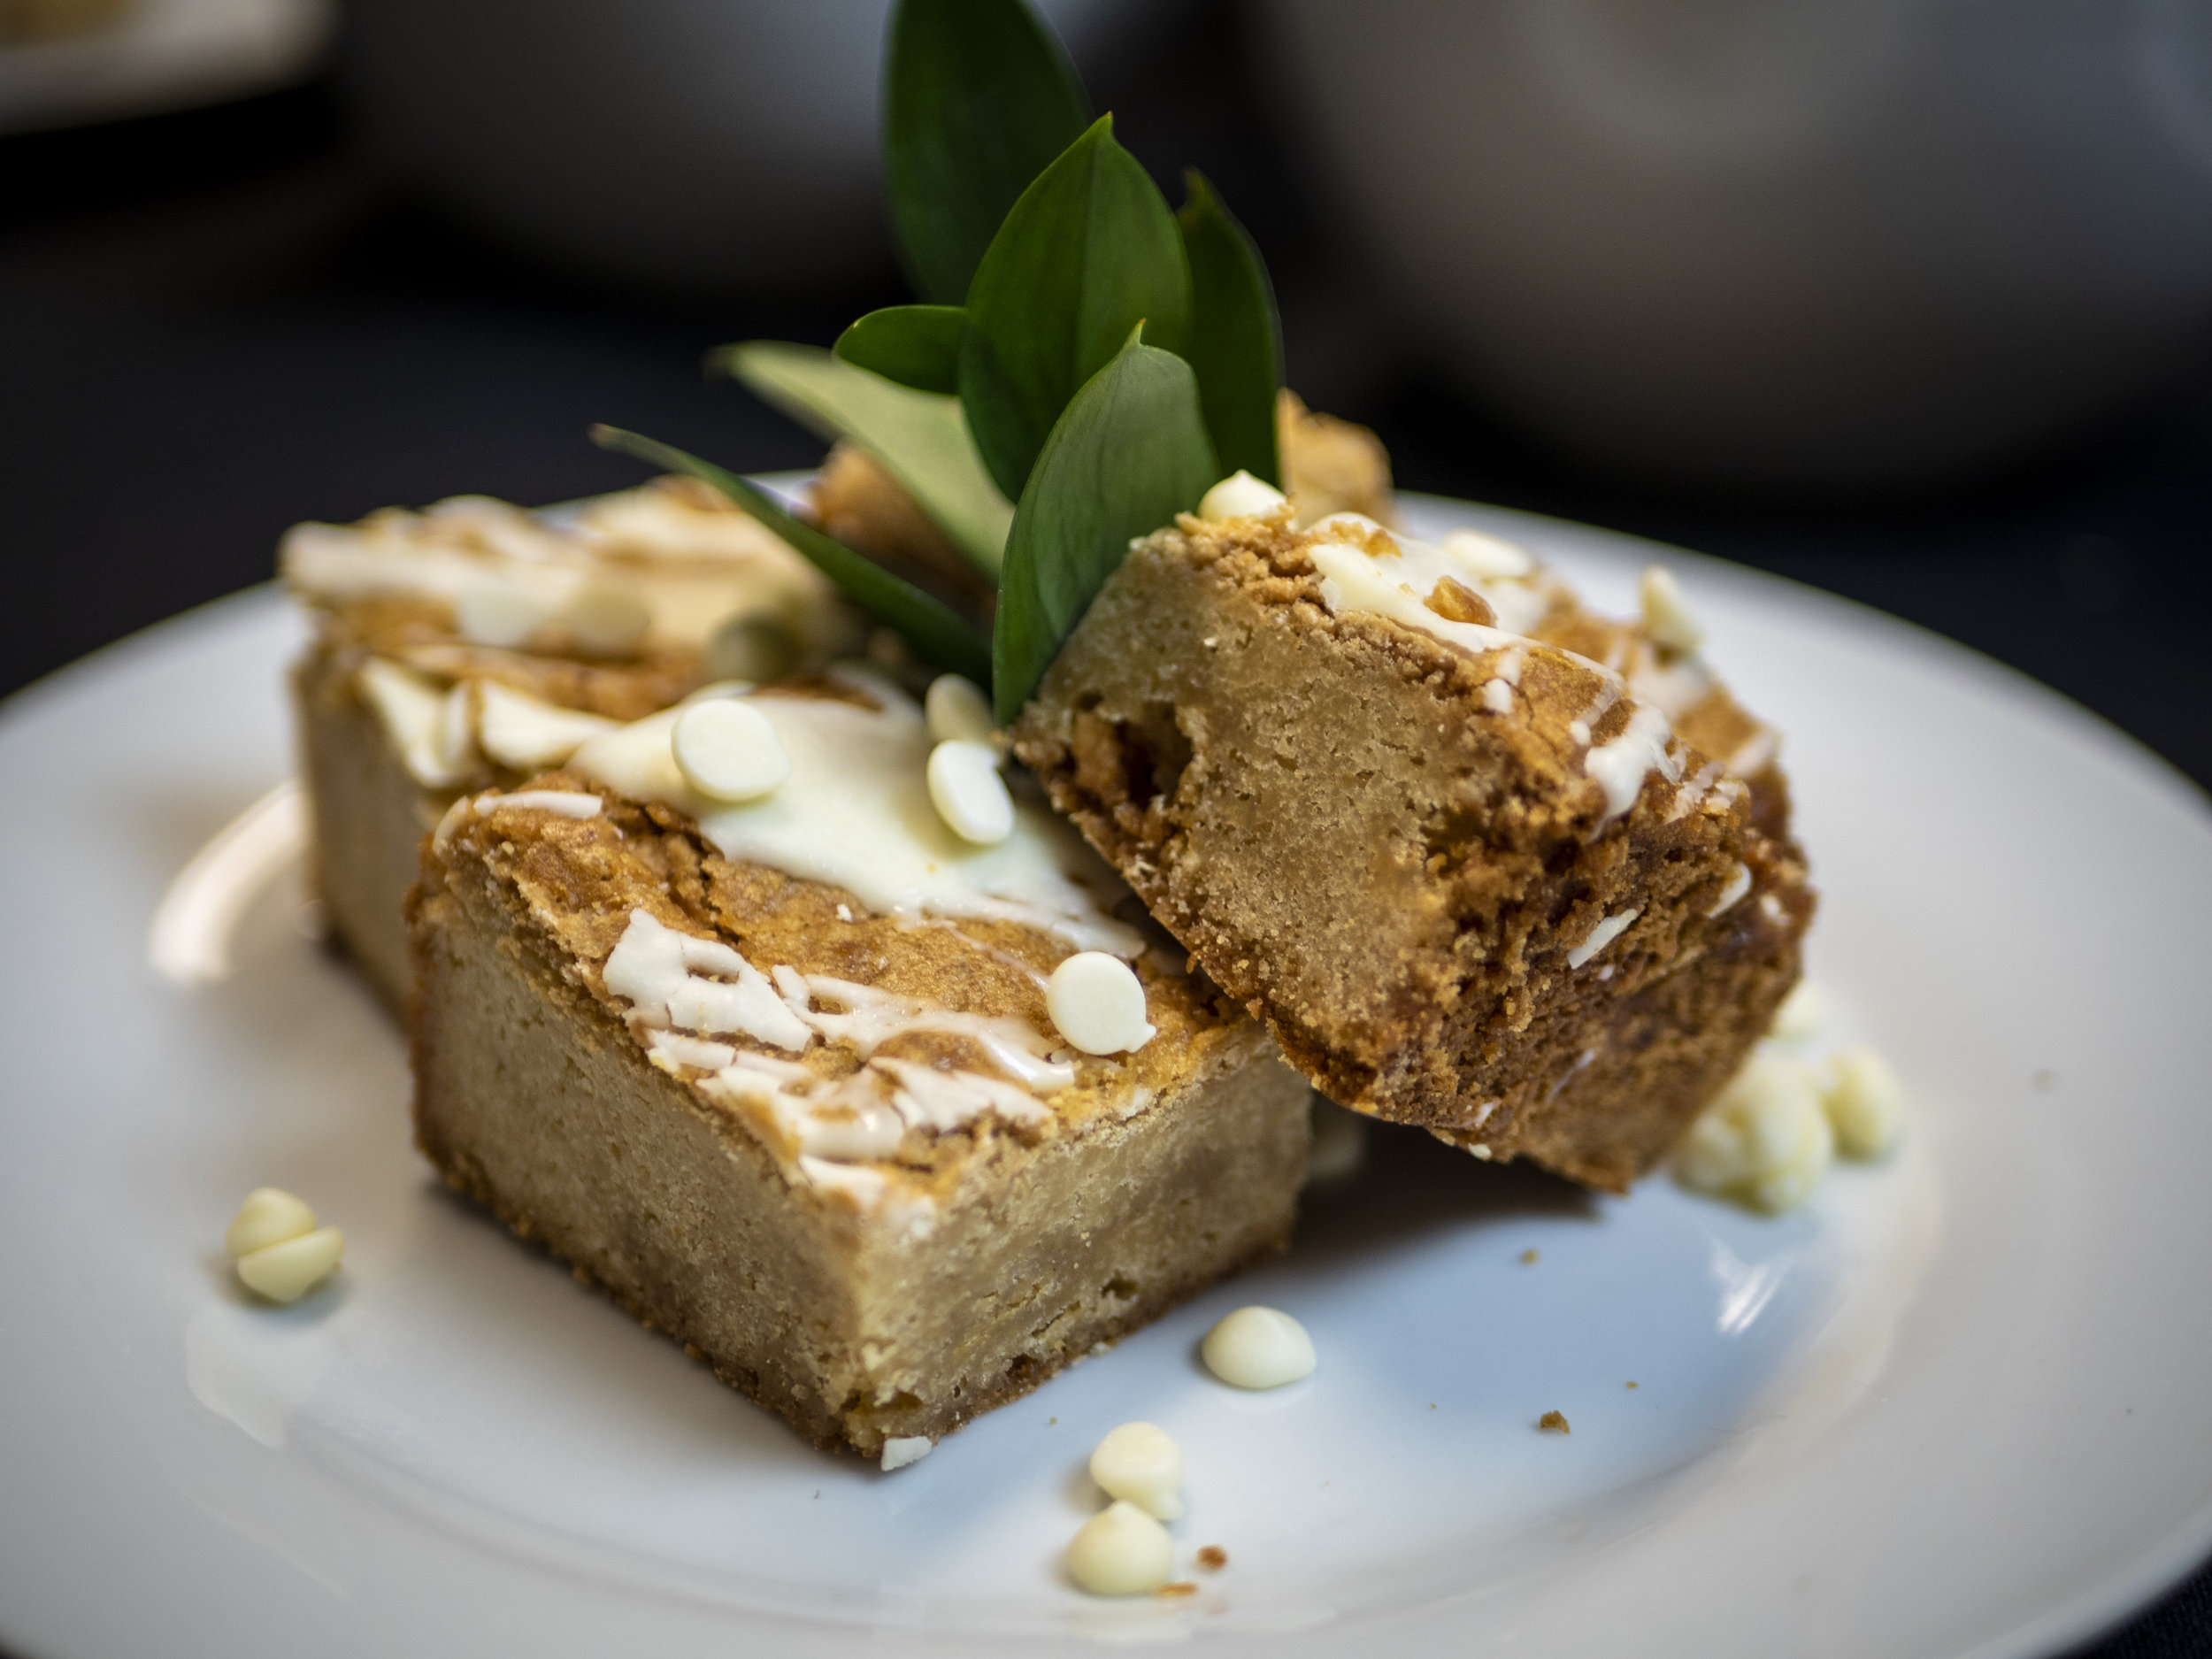 Pumpkin Spice Bars - Beat together:1 ¼ cup pumpkin2 eggsStir in:1 stick & 2 tablespoons soft butter2 cup brown sugar2 teaspoons of vanilla1 ¼ cup flour1 ½ teaspoon pumpkin pie spice1 ½ teaspoon nutmeg1 ¼ teaspoon baking sodaCombine & mix above ingredients and put in ½ sheet pan, greased and floured.Bake at 375 degrees F for approximately 30 minutes. Test if done with toothpick.Topping1 ¾ Cup Flour1 ¼ Cup Melted Butter1 ½ Cup Brown Sugar1 ½ Cup Chopped Pecans2 ½ Teaspoon Cinnamon1 Teaspoon Pumpkin SpiceCombine and mix until crumbly. Spread on top of bars.